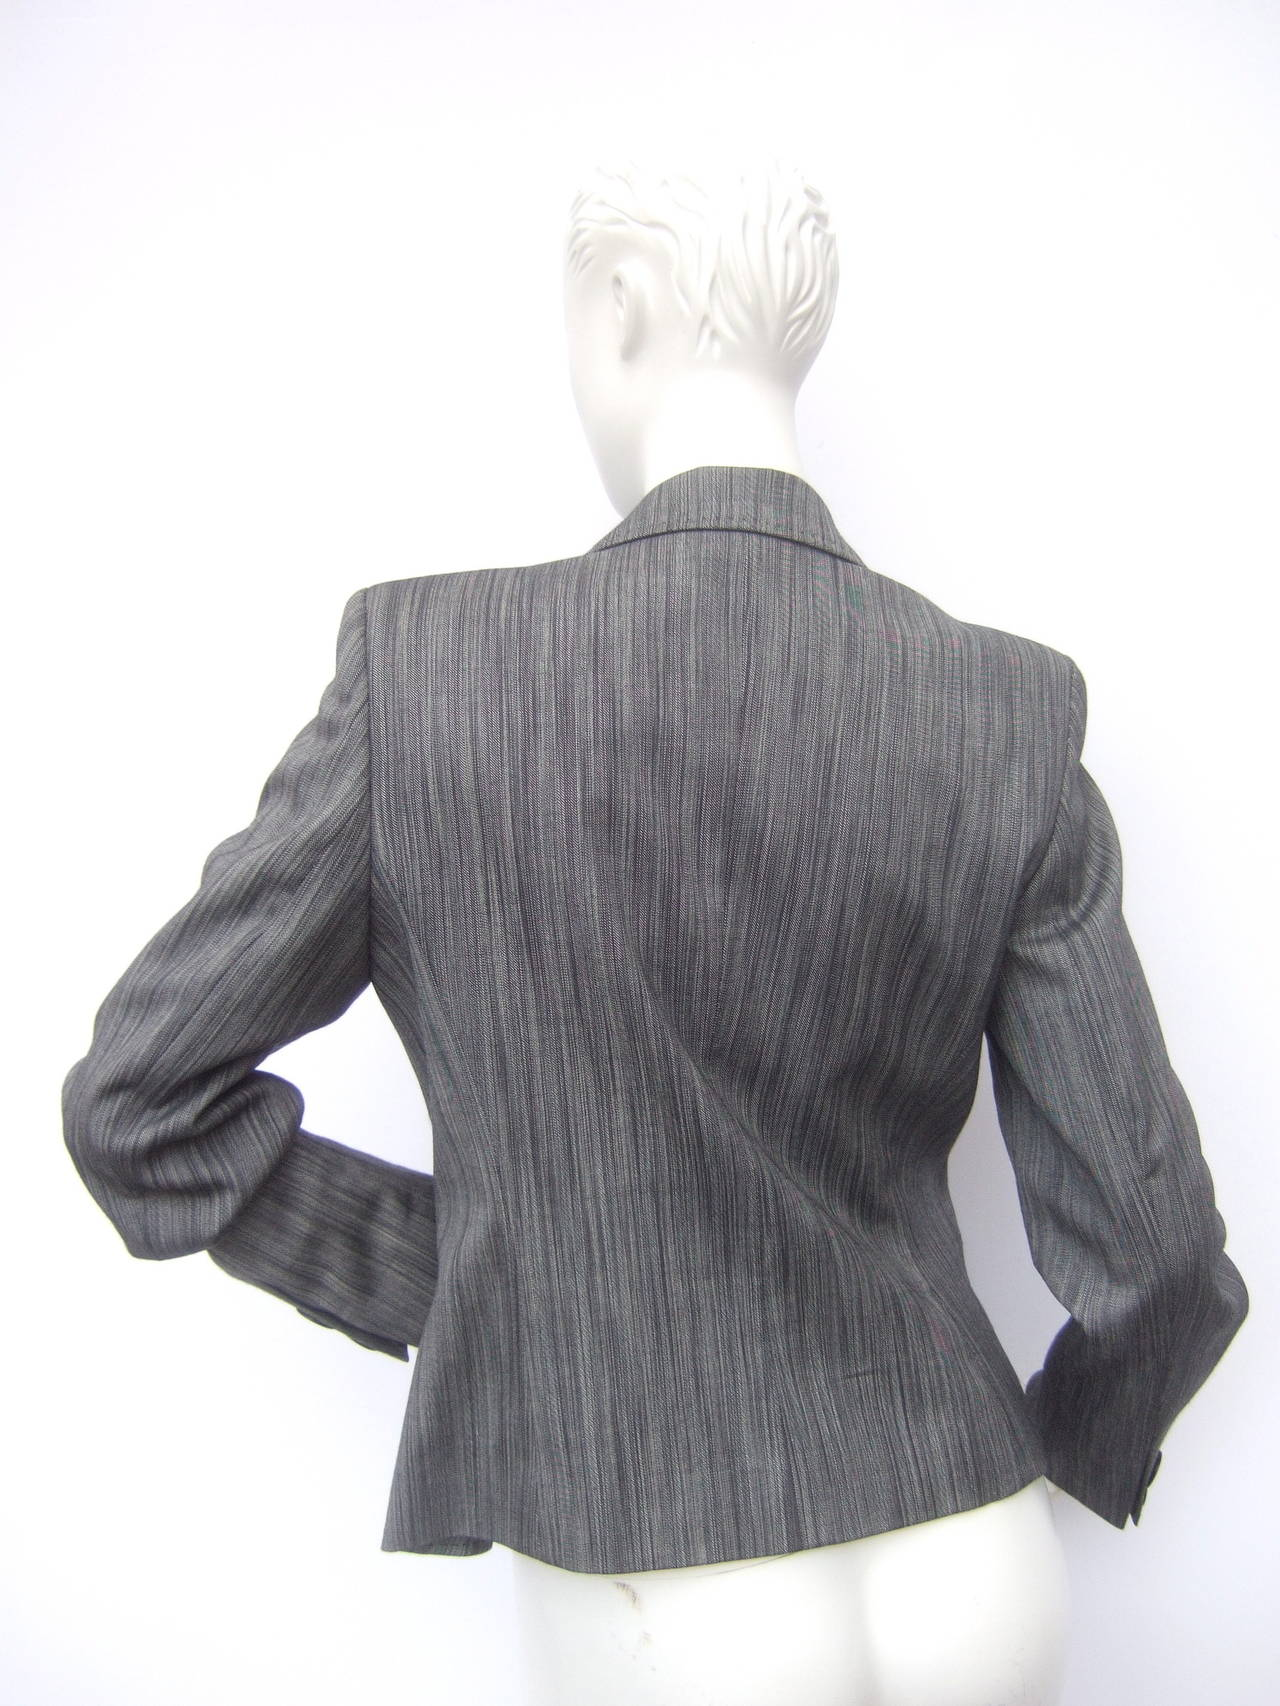 Herve Leger Paris Gray wool tailored jacket US Size 4 For Sale 2